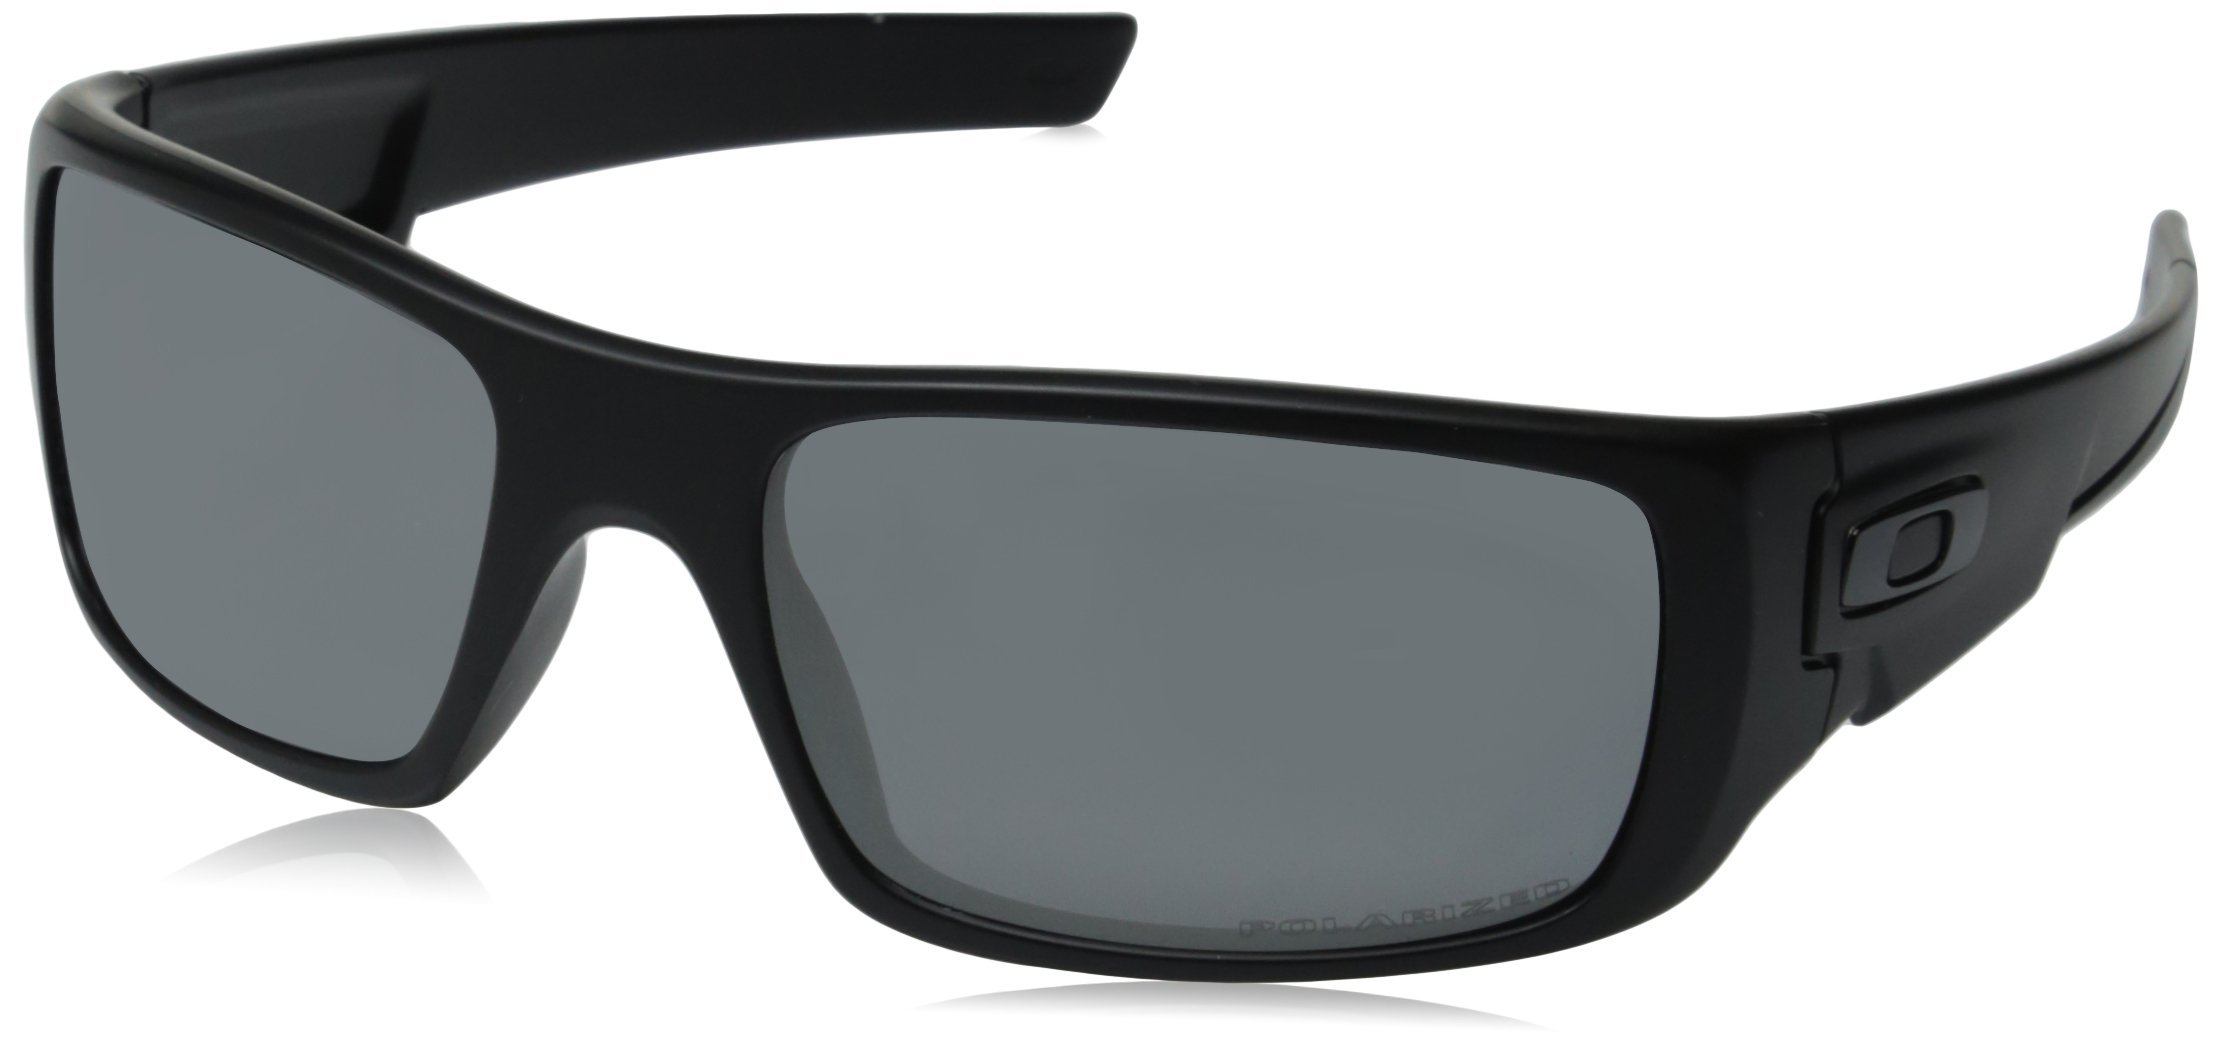 Oakley Men's OO9239 Crankshaft Rectangular Sunglasses, Matte Black/Black Iridium Polarized, 60 mm